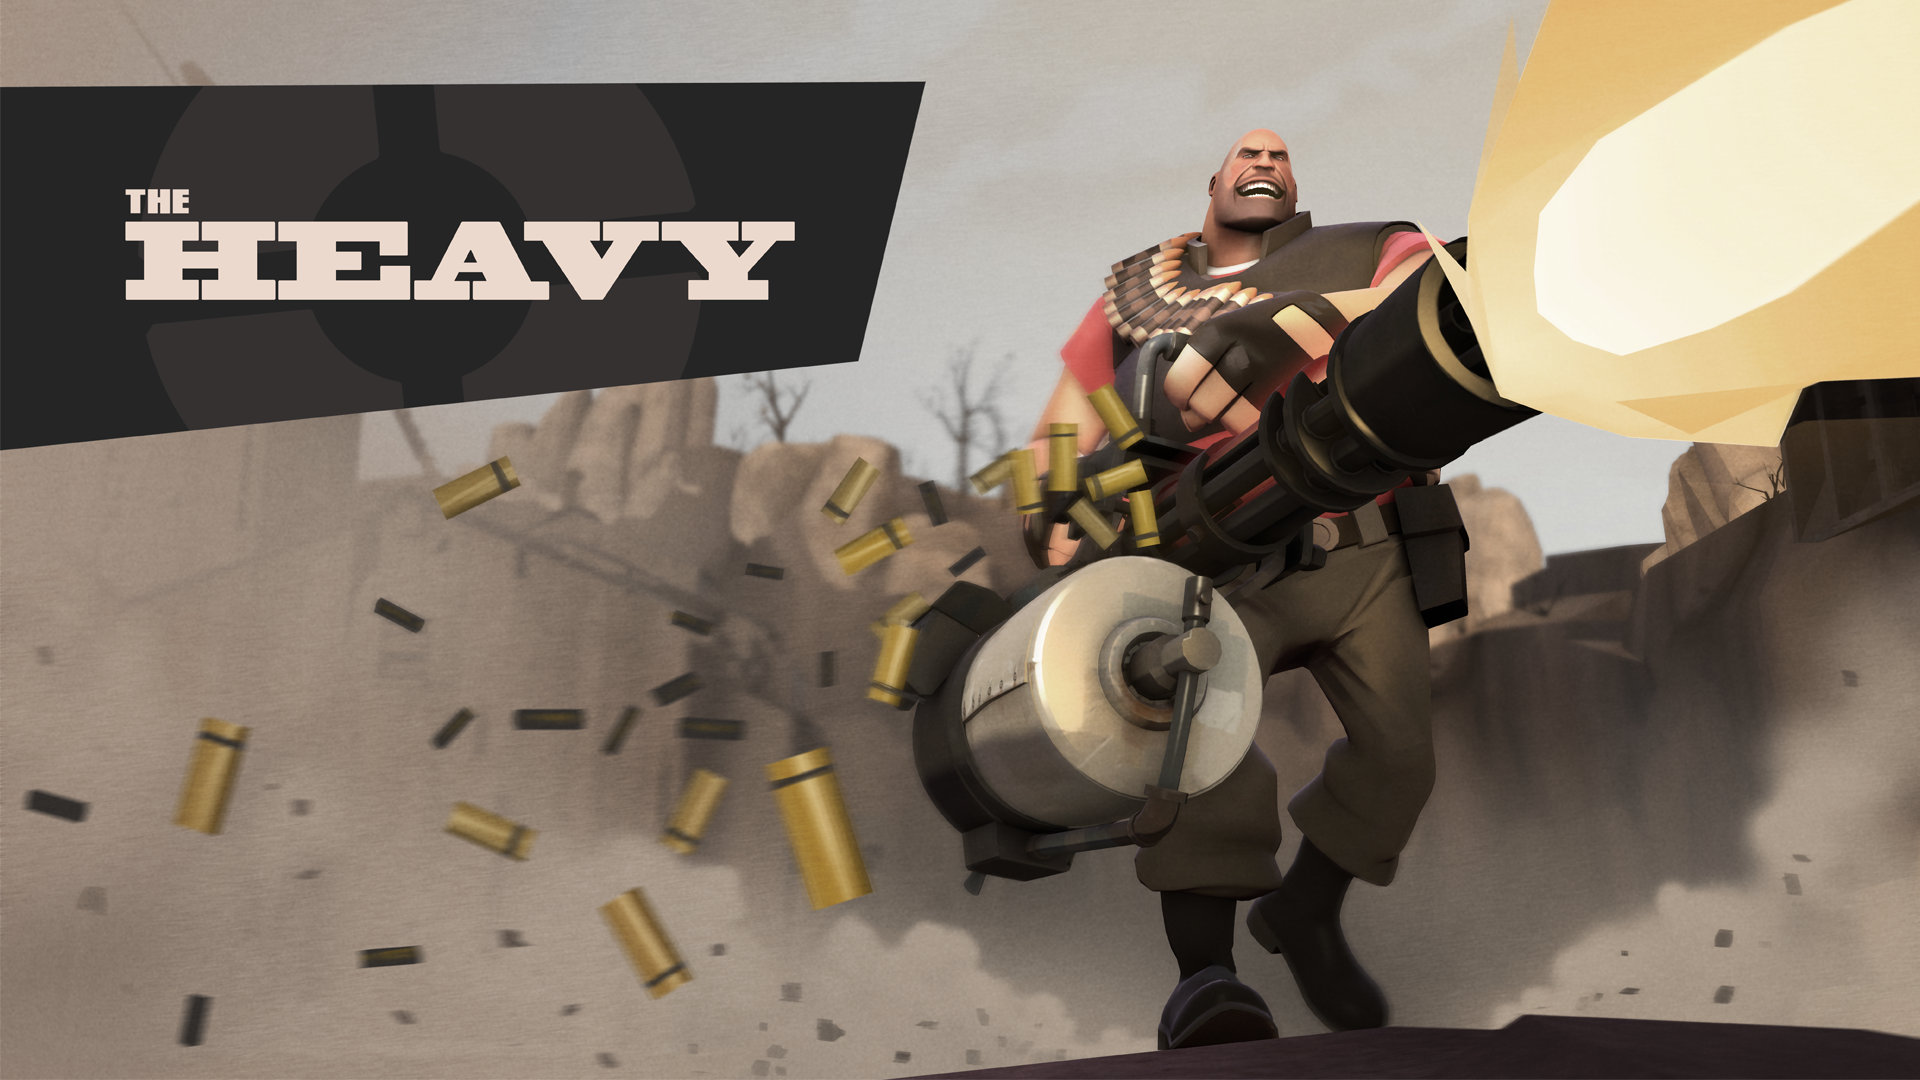 Steam Game Card Wallpaper Heavy Cromos De Steam Official Tf2 Wiki Official Team Fortress Wiki Team Fortress 2 Team Fortress Fortress 2